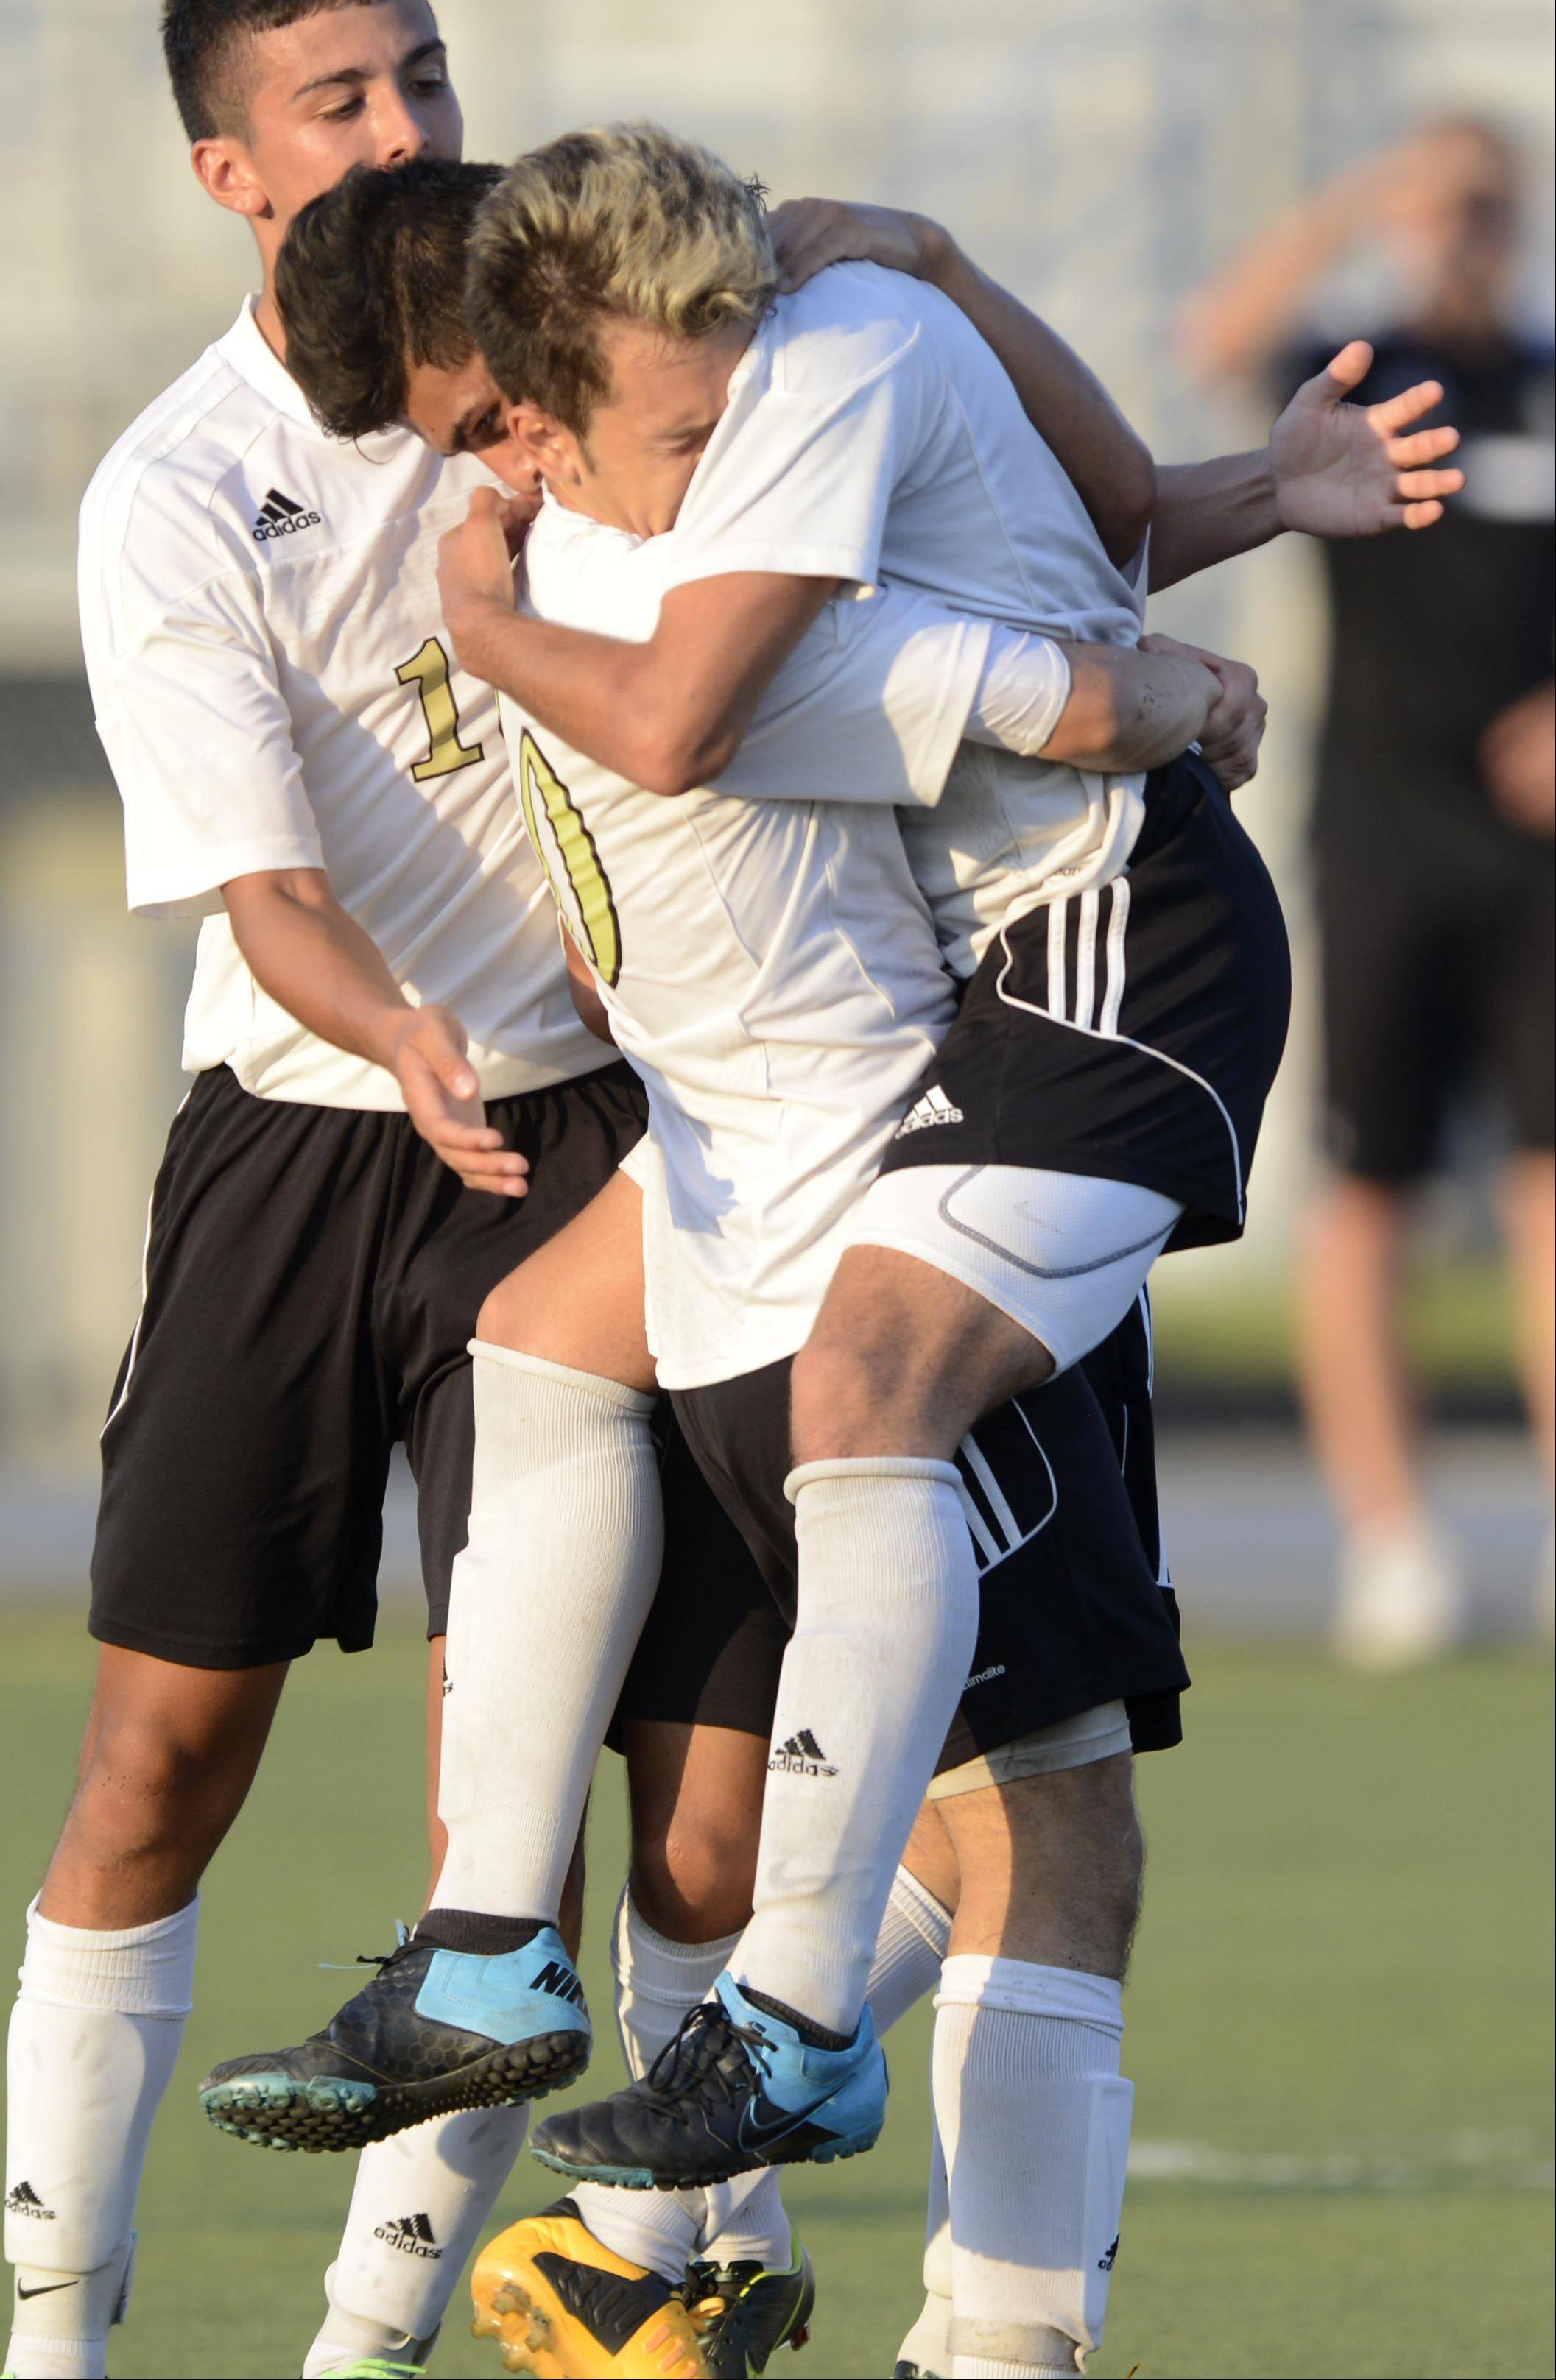 Streamwood's Christian Vences is picked up by teammate Nestor Ascencio after Vences scored the first goal against Kaneland Monday in Streamwood. Teammate Christian Balbino also arrives for the celebration.